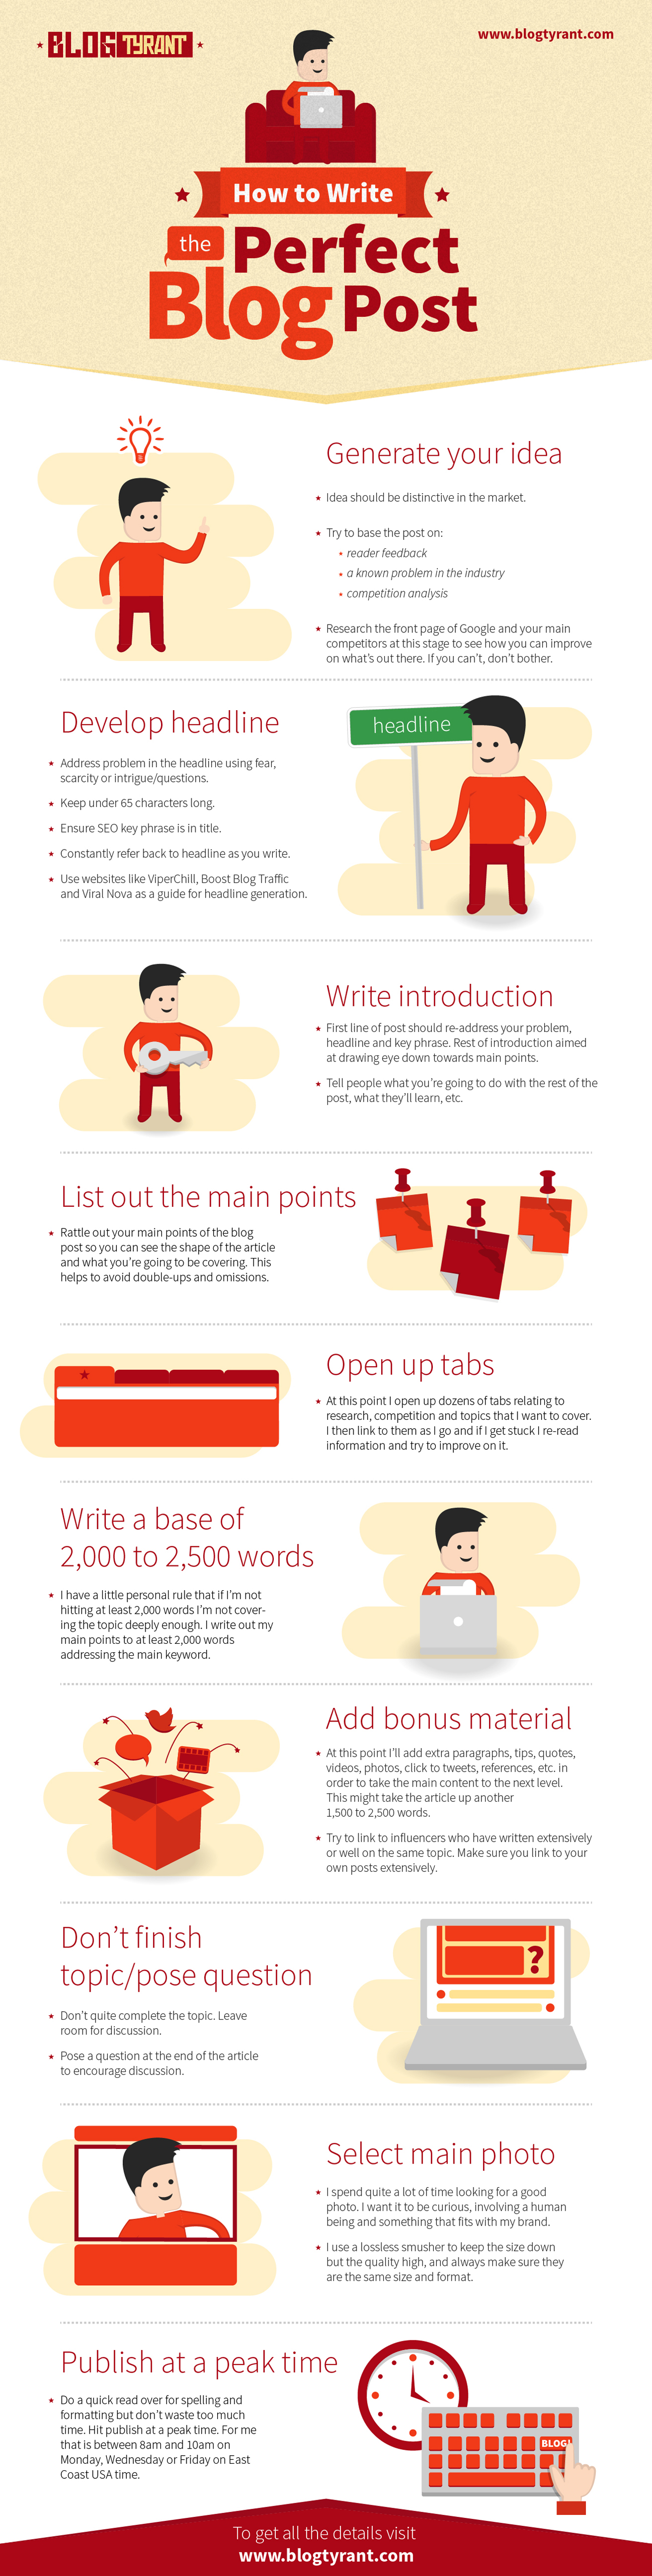 How to Write the Perfect Blog Post: A Complete Guide to Copy